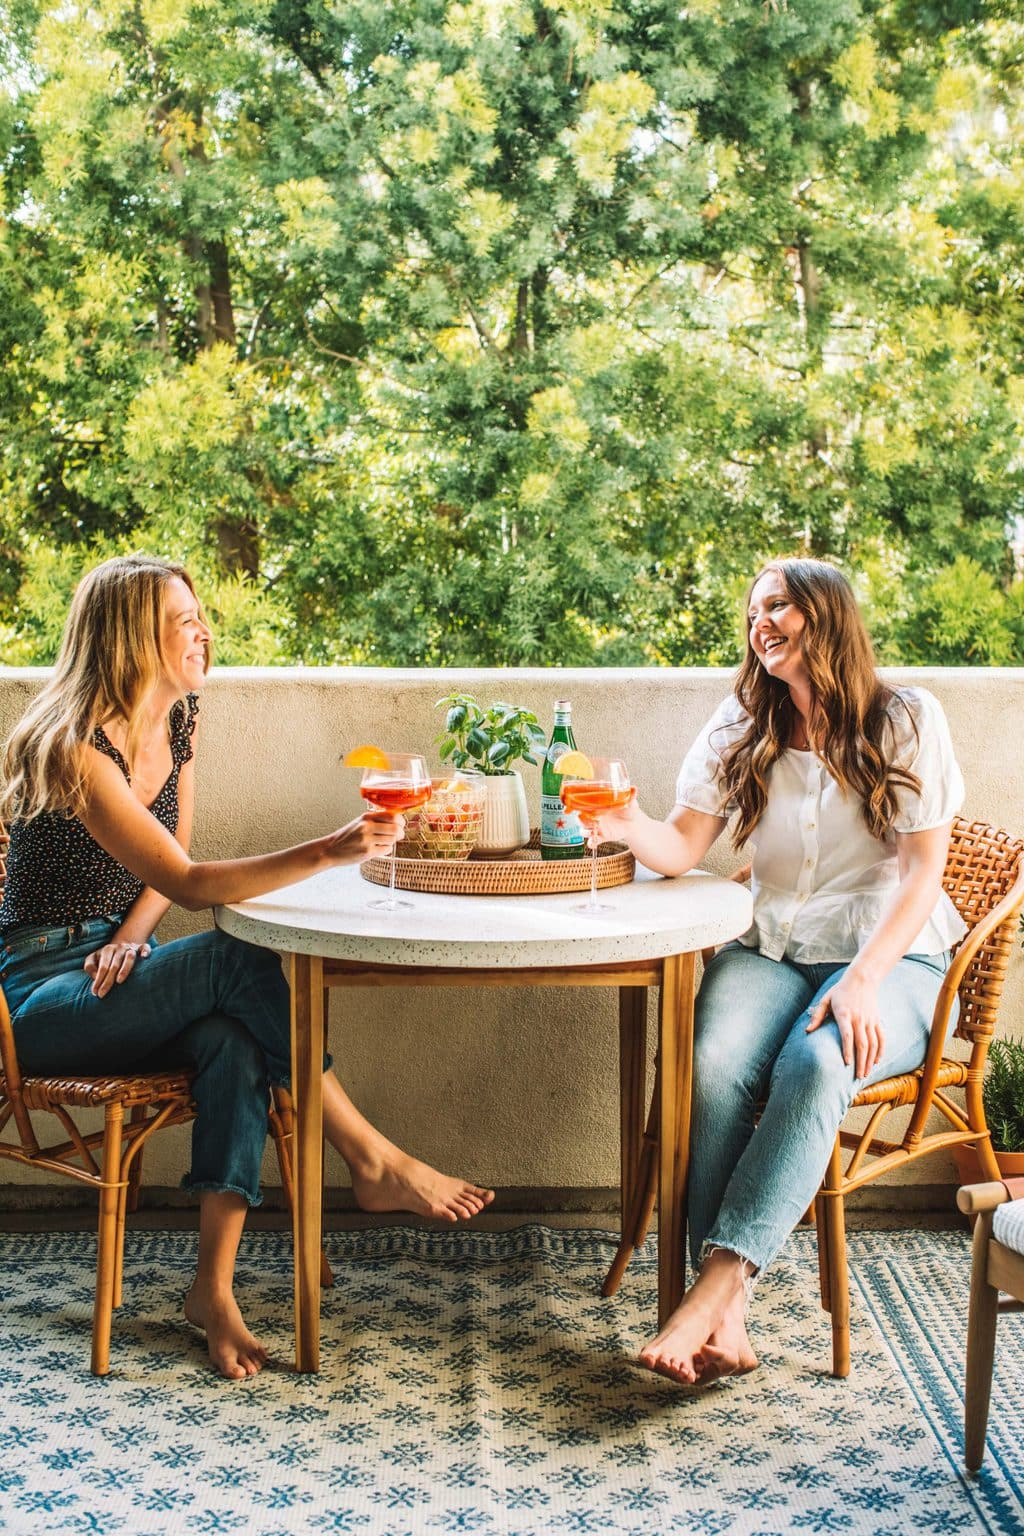 Two girls enjoying a cocktail on an outdoor dining table set.